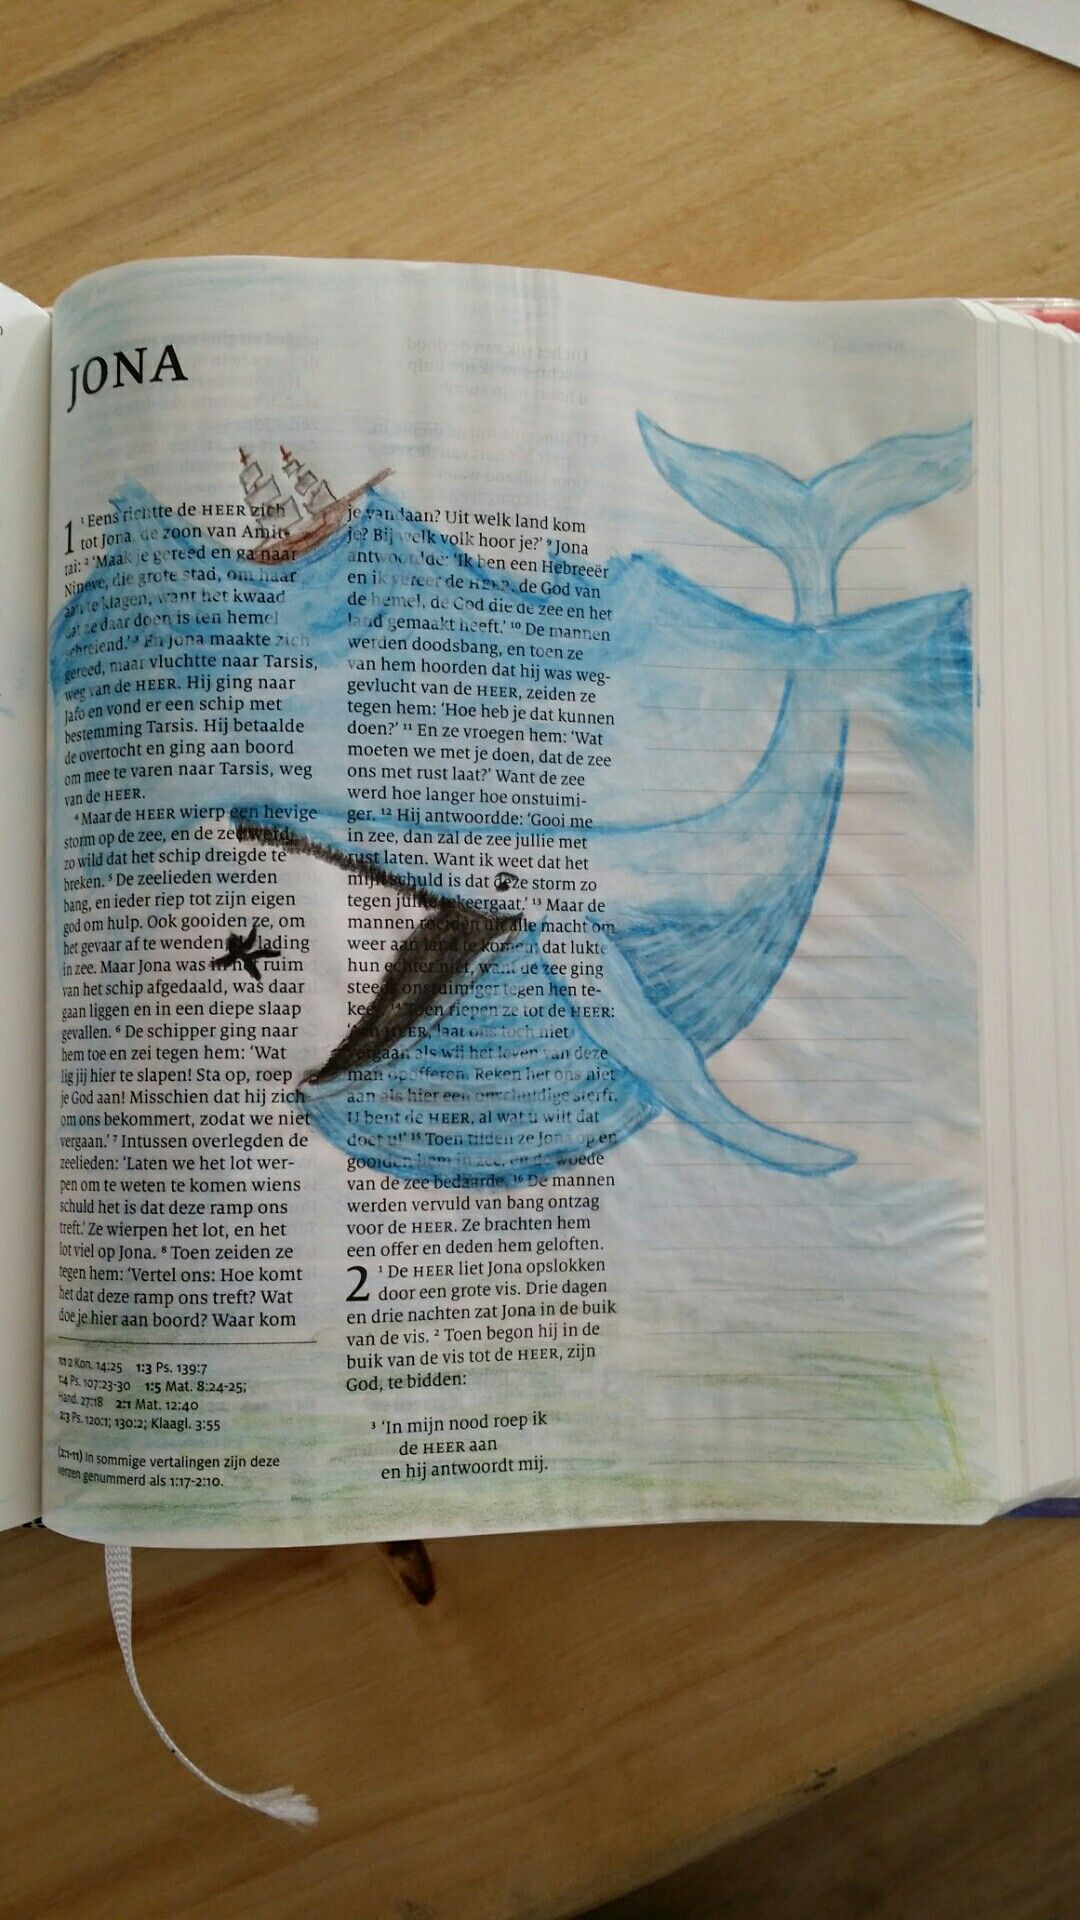 Pin by Heather Mccoy-Hughes on My ♡ for my Jesus! | Jonah